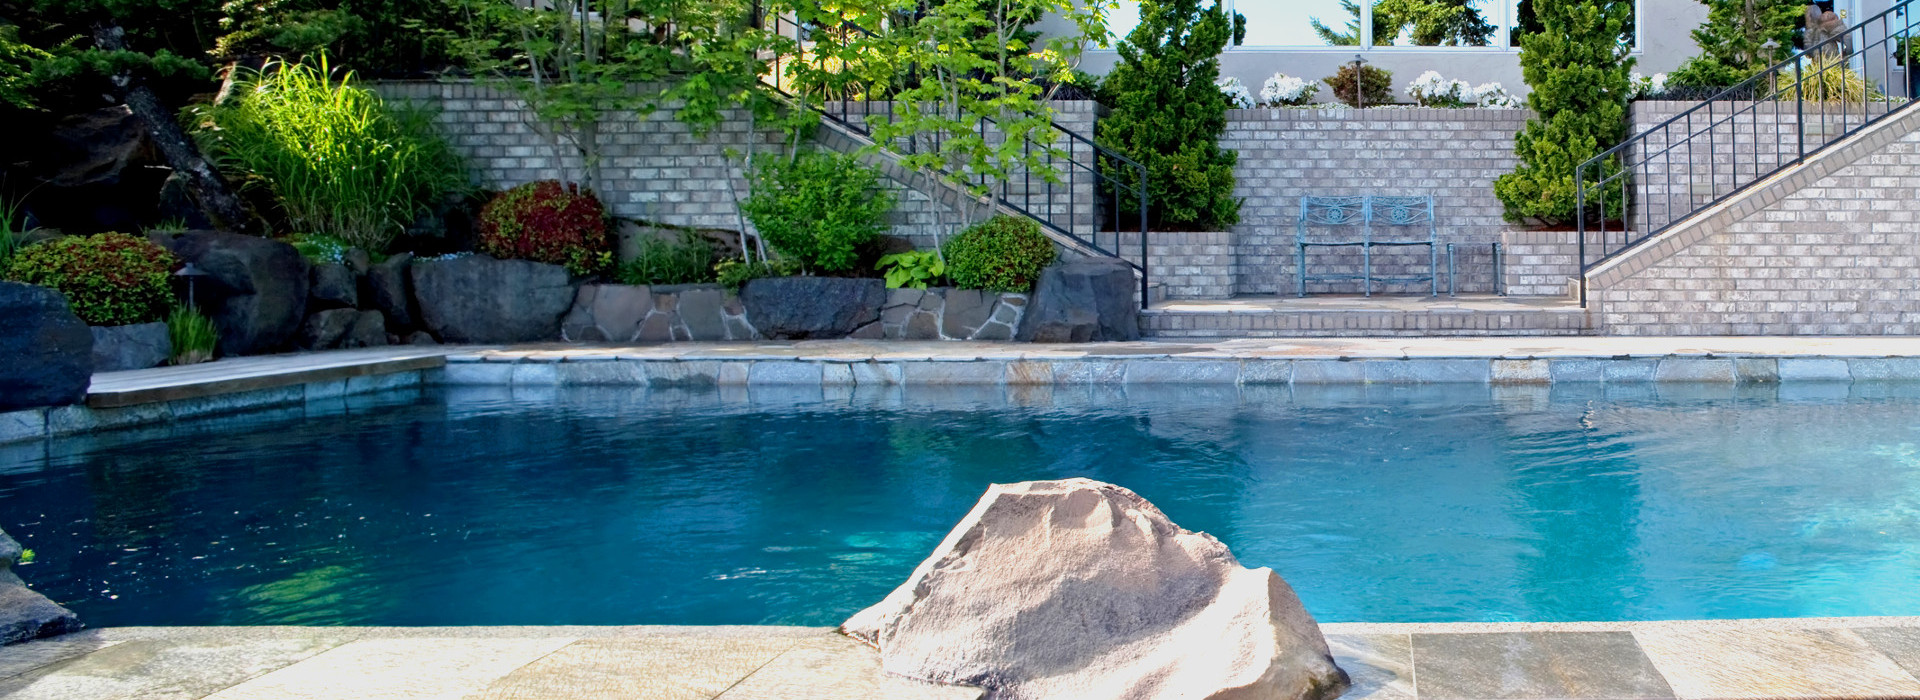 Landscaper hamilton burlington beaudry group for Pool design hamilton